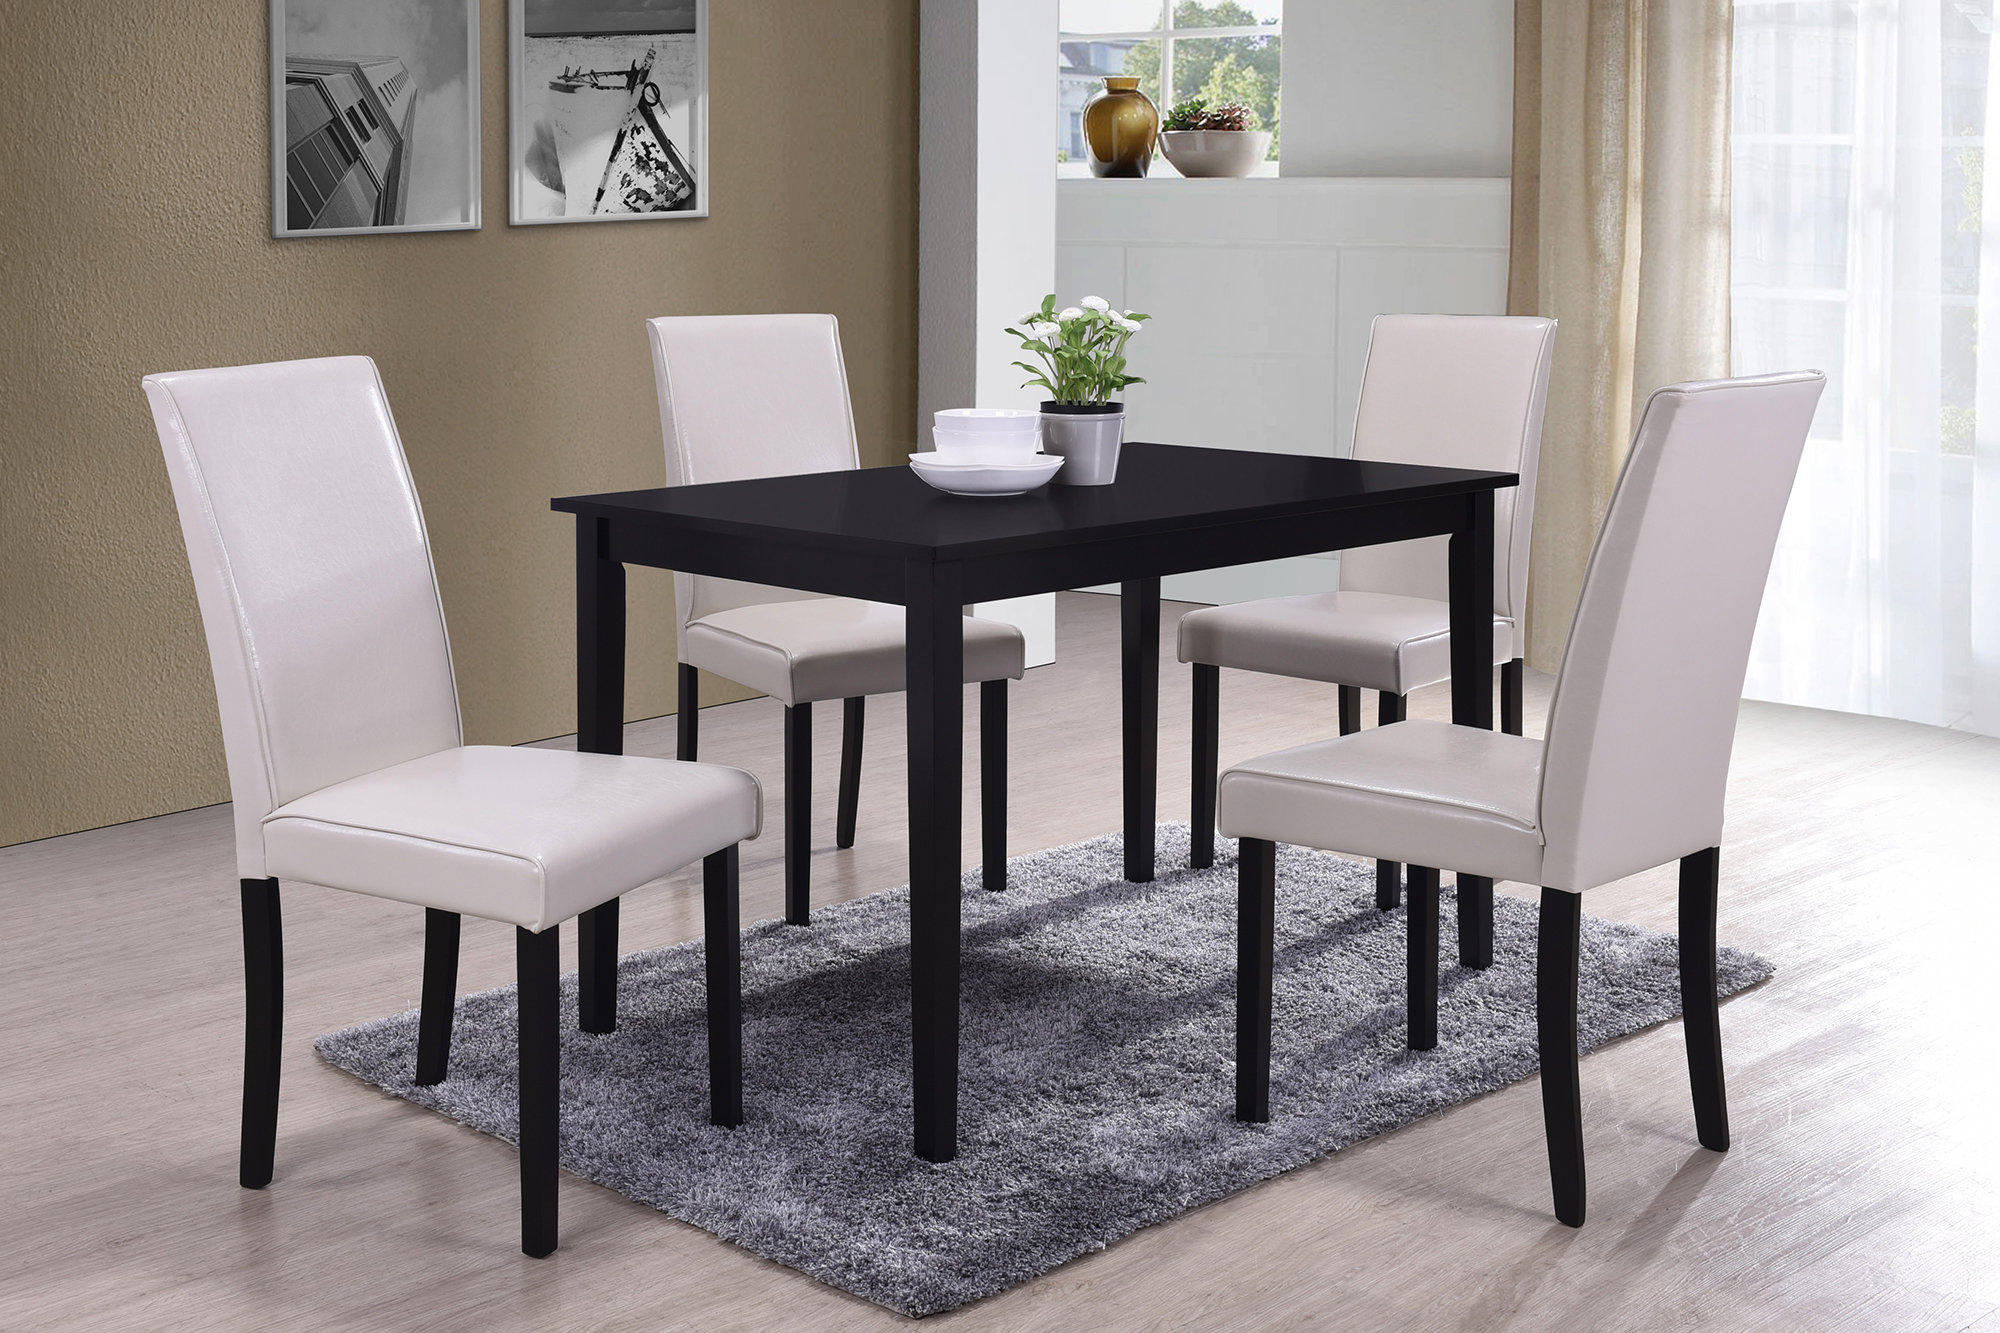 Ebern Designs Macneil 5 Piece Dining Set Intended For Best And Newest Travon 5 Piece Dining Sets (View 3 of 20)